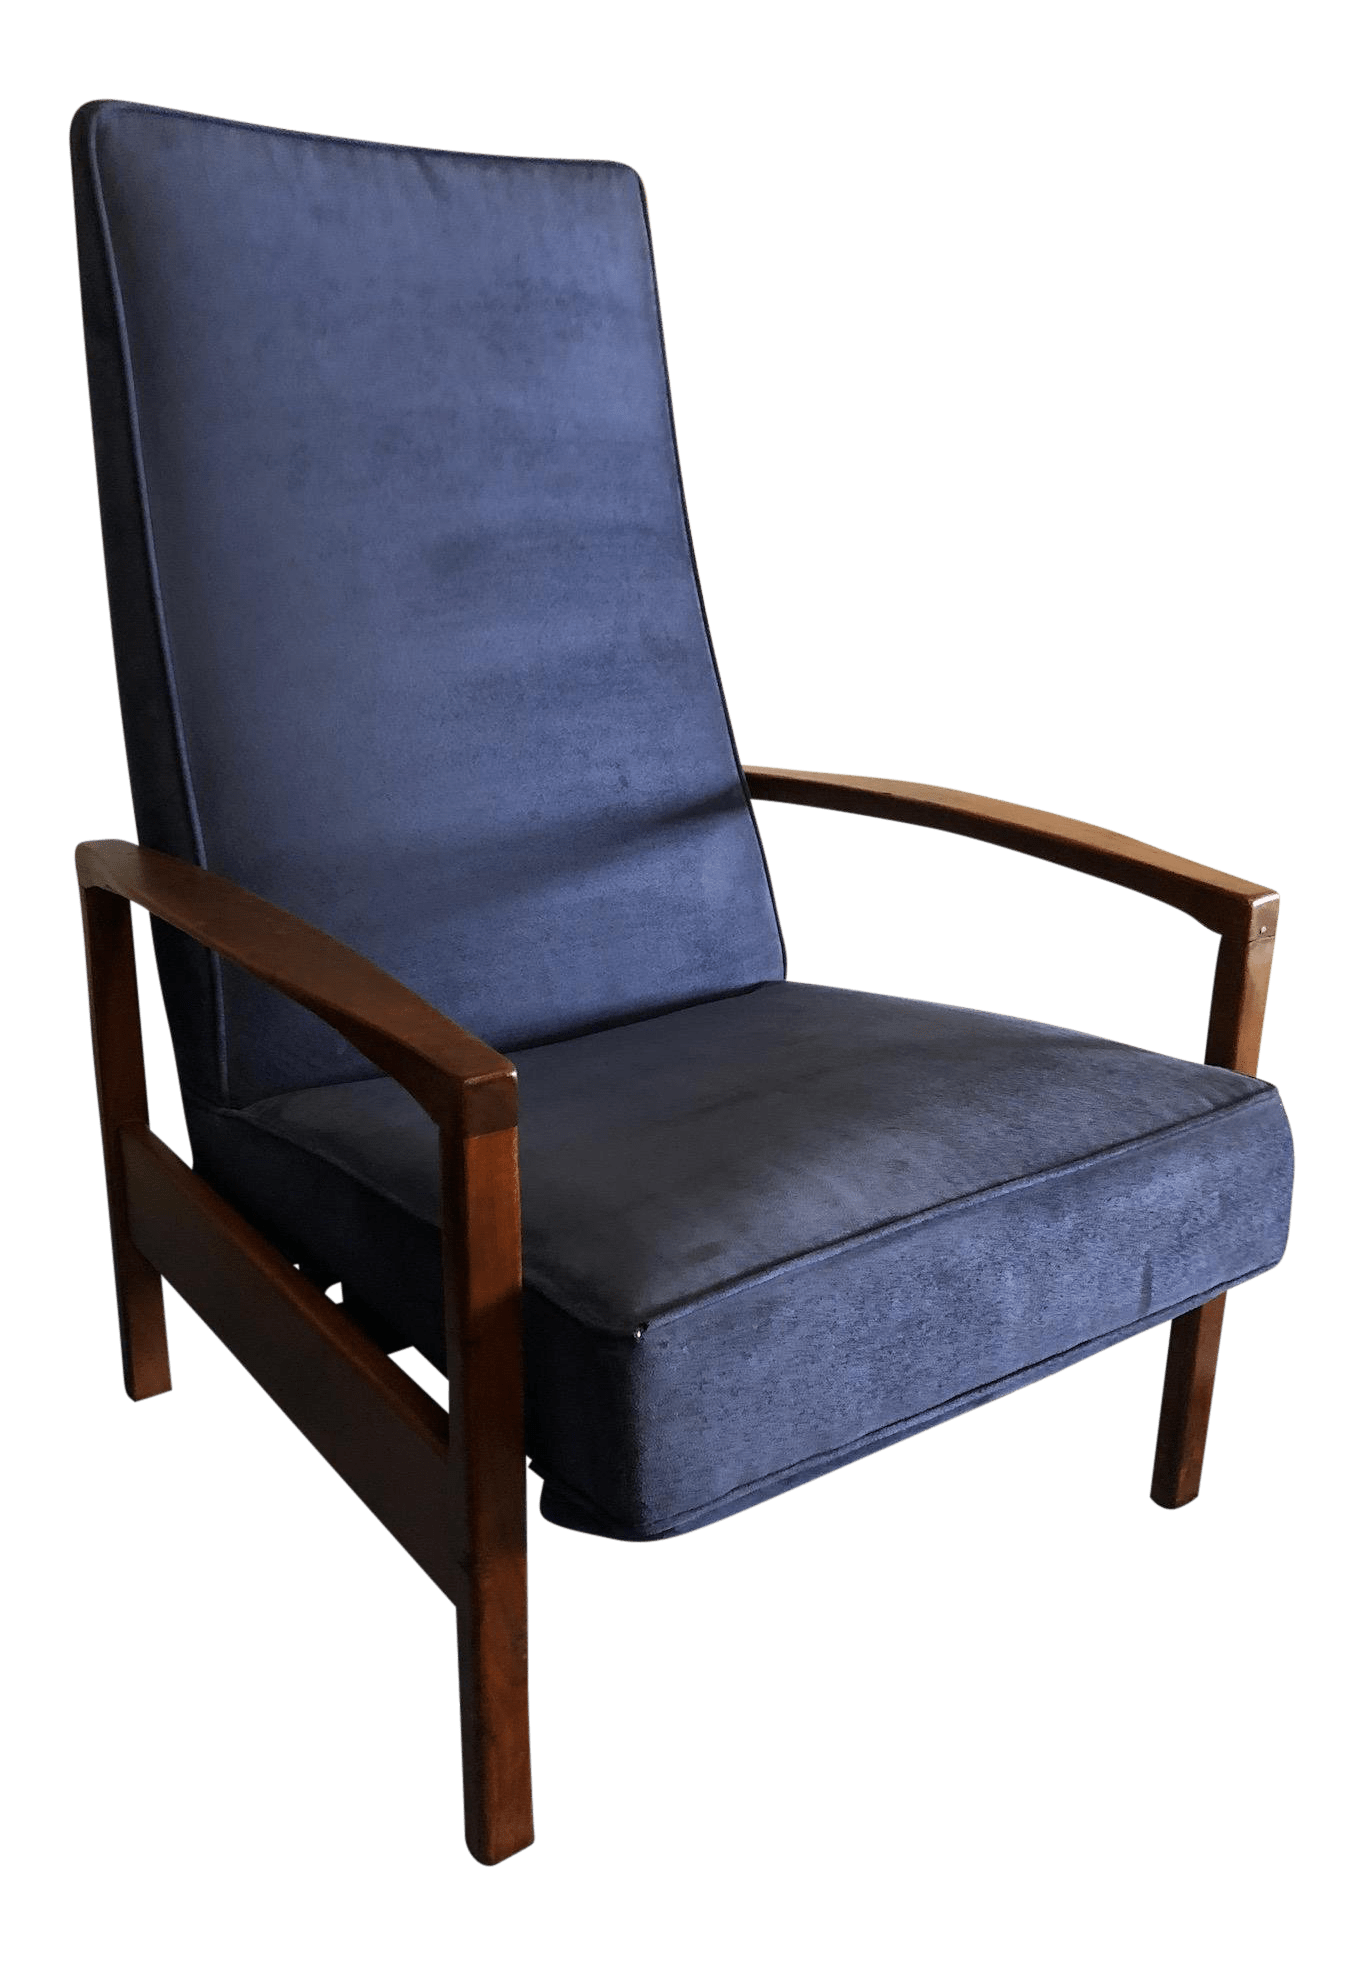 accent chair recliner rv captain seat covers vintage used reclining chairs for sale chairish mid century milo baughman thayer coggin lounge